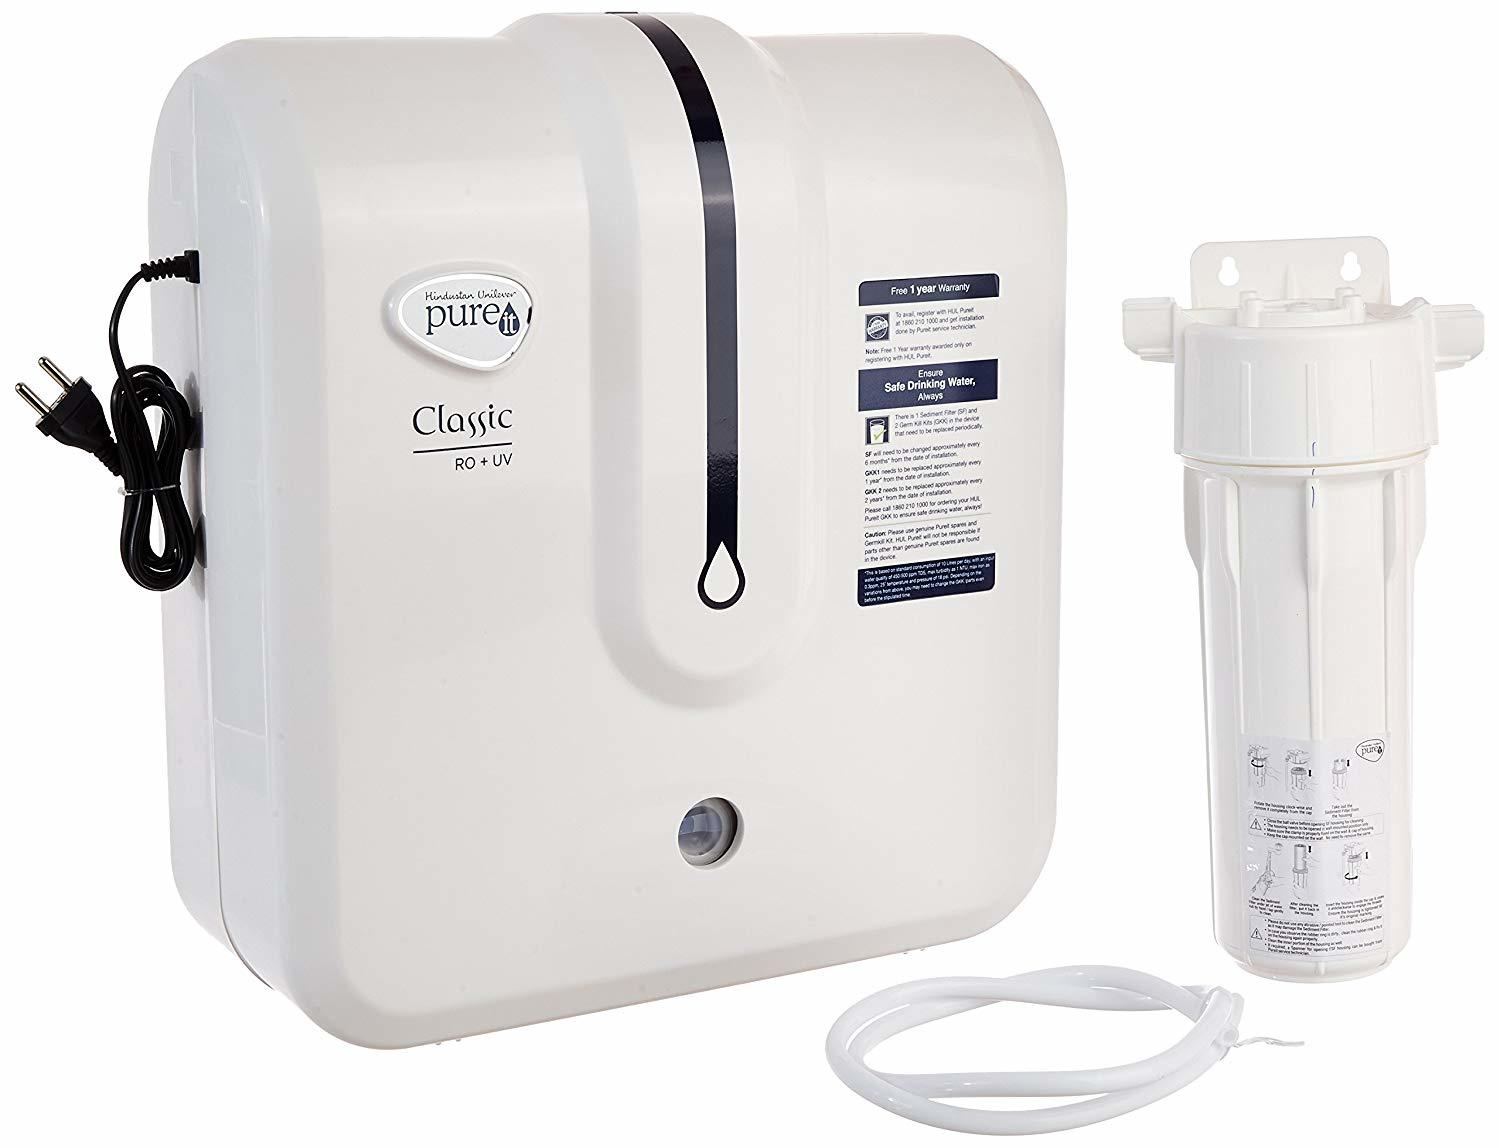 HUL Pureit Classic RO + UV 6 Stage Table Top/Wall Mountable White & Blue 5 litres Water Purifier